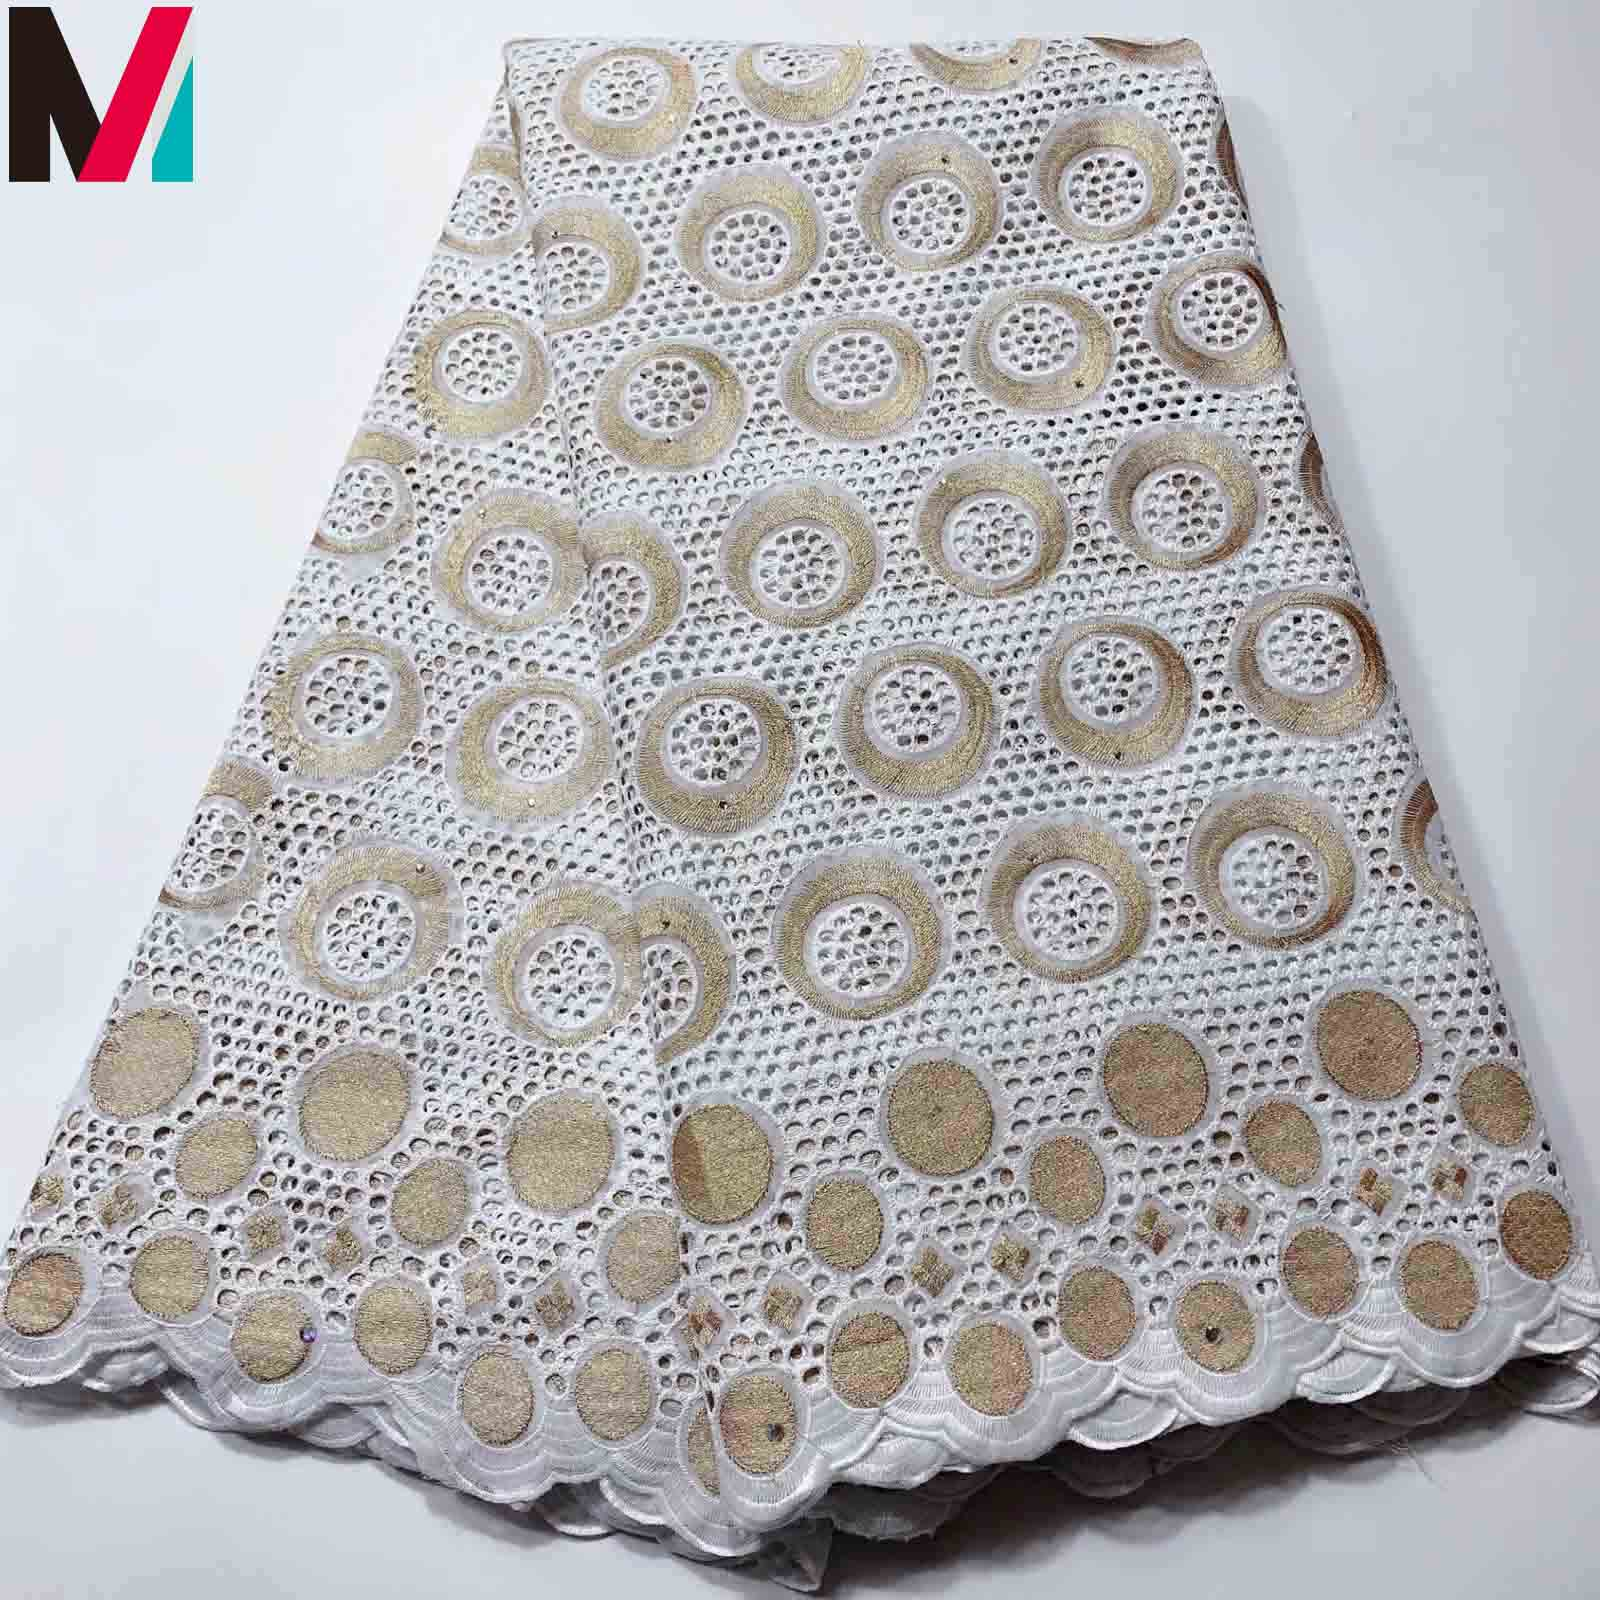 Latest style african dry lace for lingerie fashion designs wholesale fabric 5yrd/lot embroidery embroidered heavy ladies plain